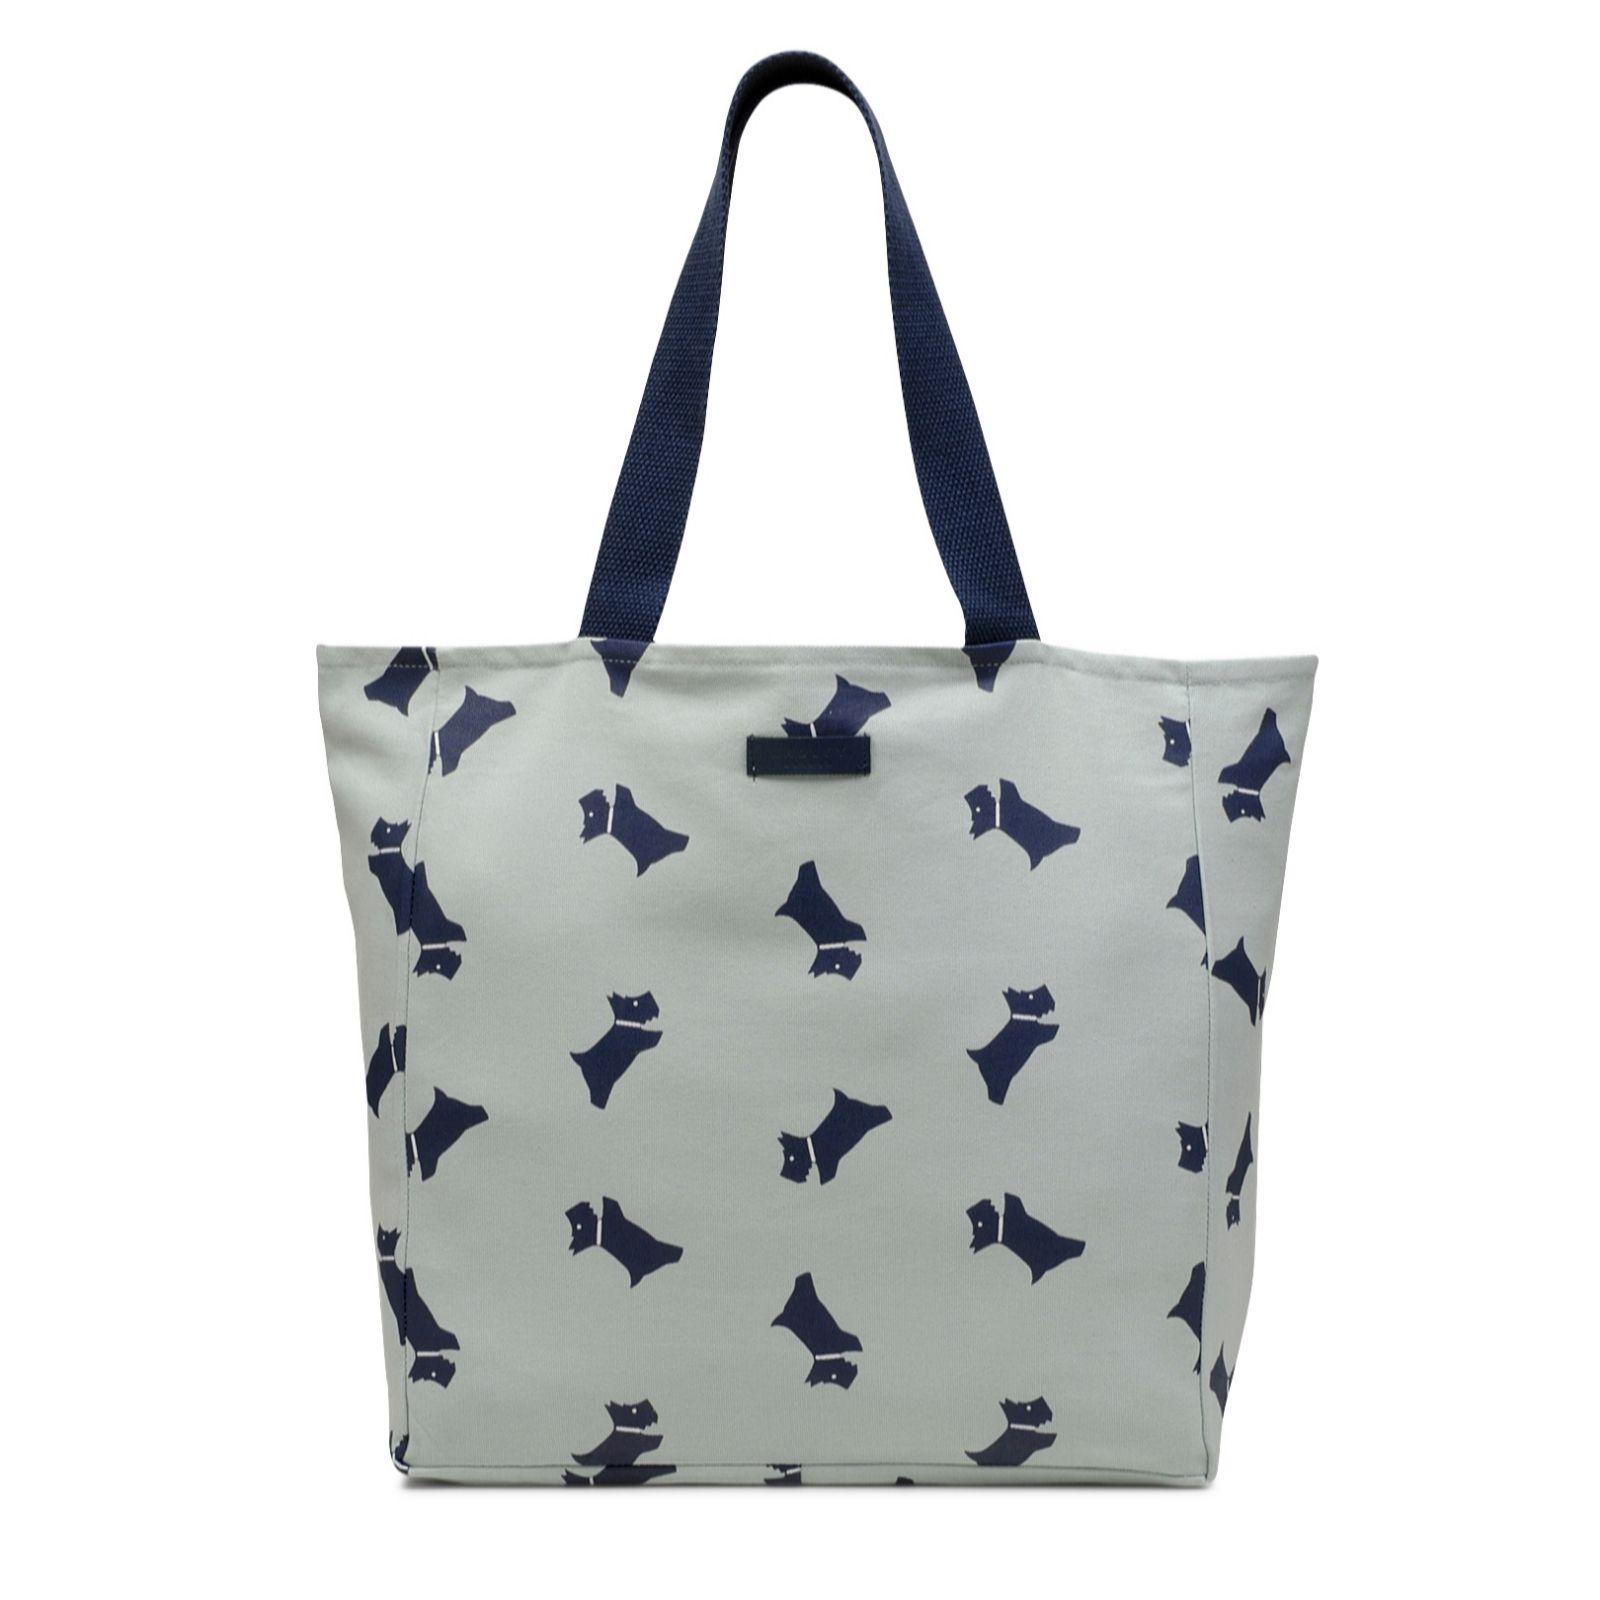 31b0a09751d7 Radley London Lincoln Inn Multi Dog Canvas Tote Bag - QVC UK